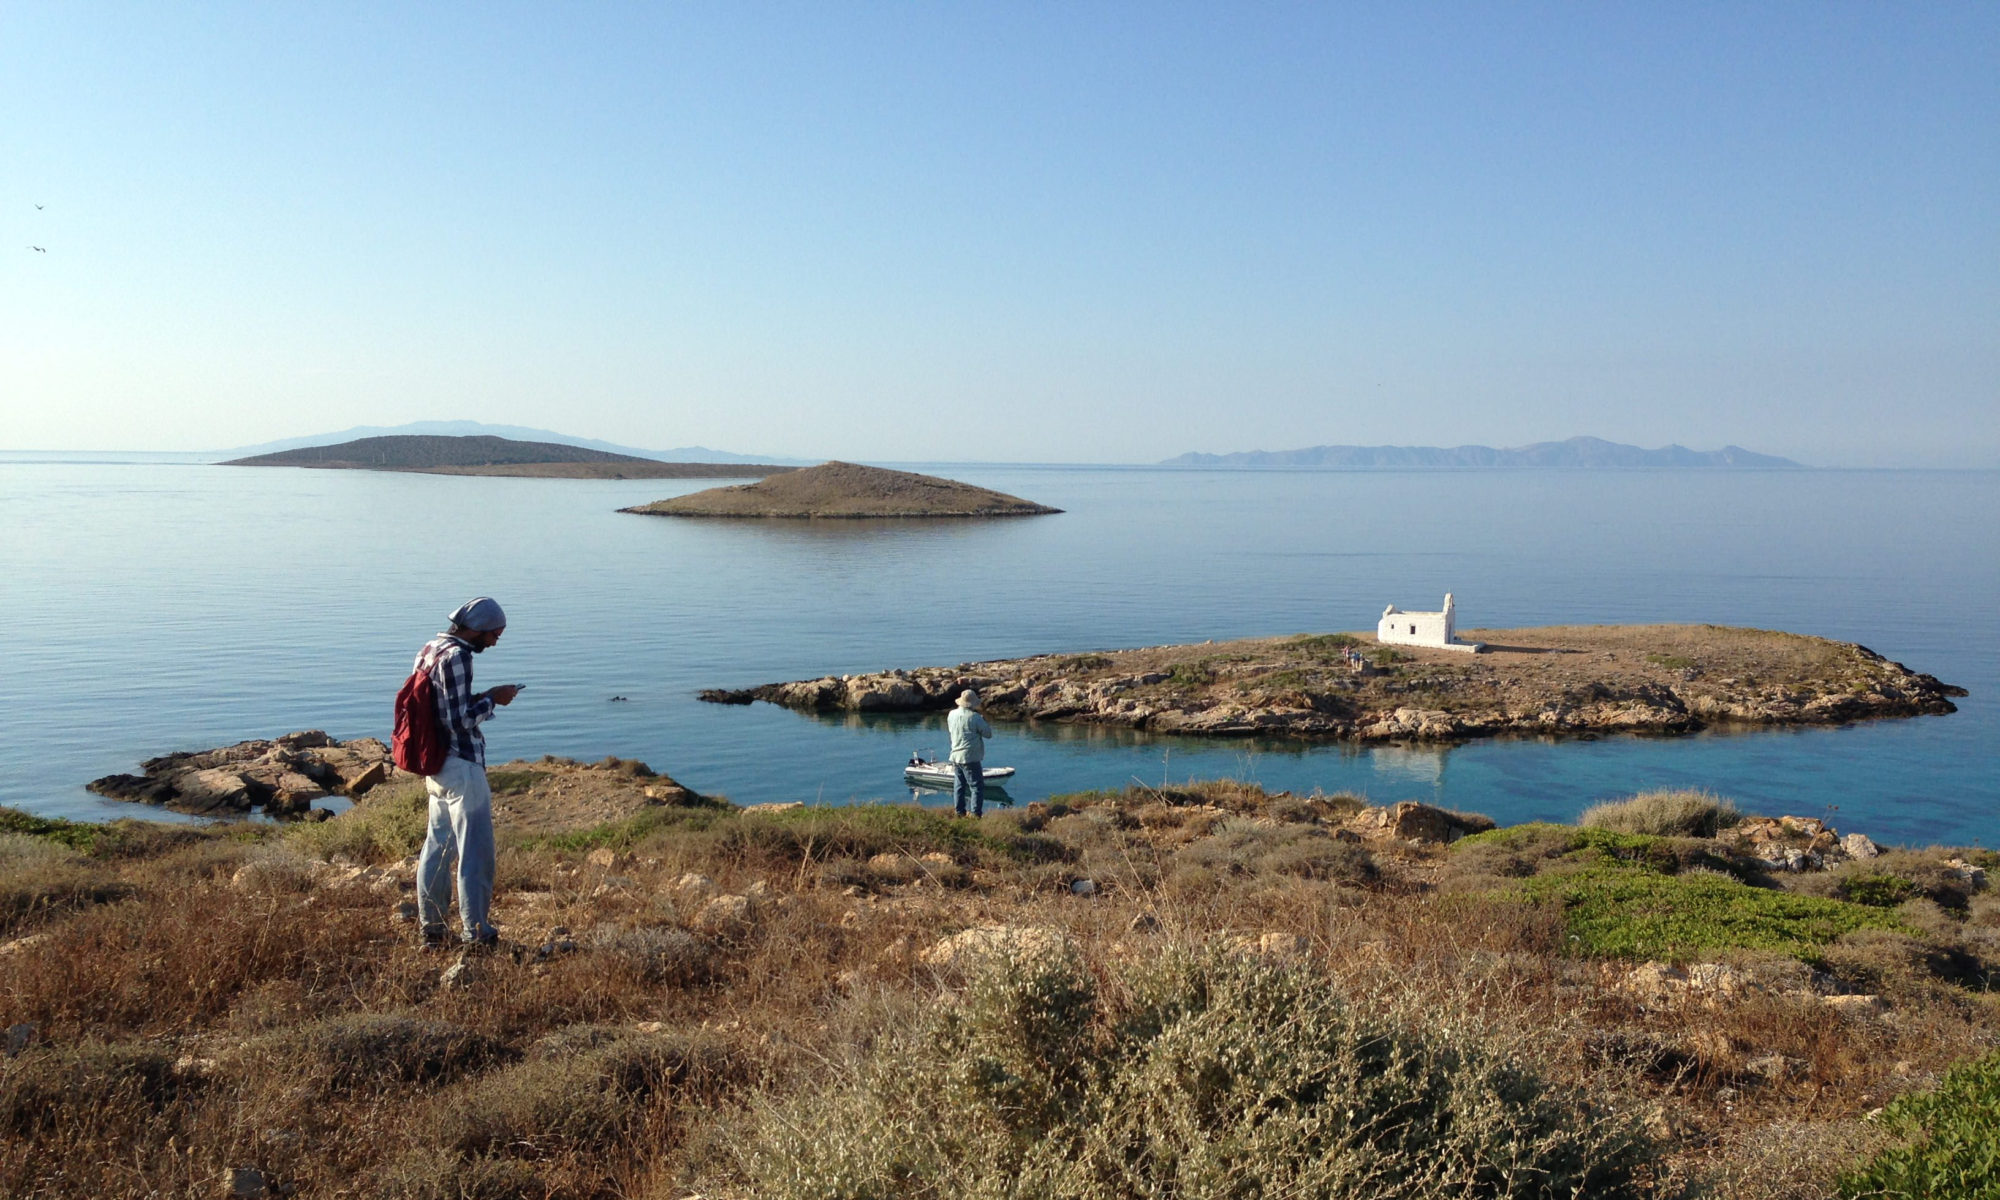 The Small Cycladic Islands Project